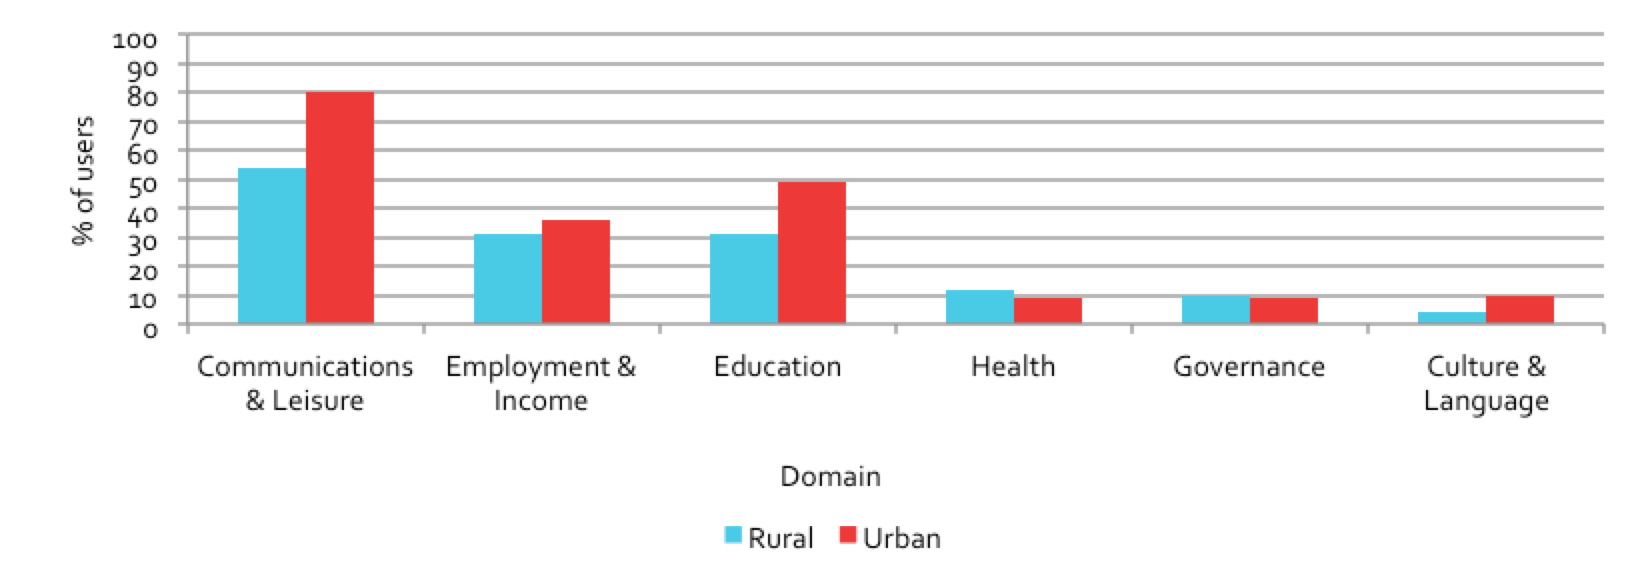 Figure 5.38: Domain usage, urban vs. rural (Bangladesh)